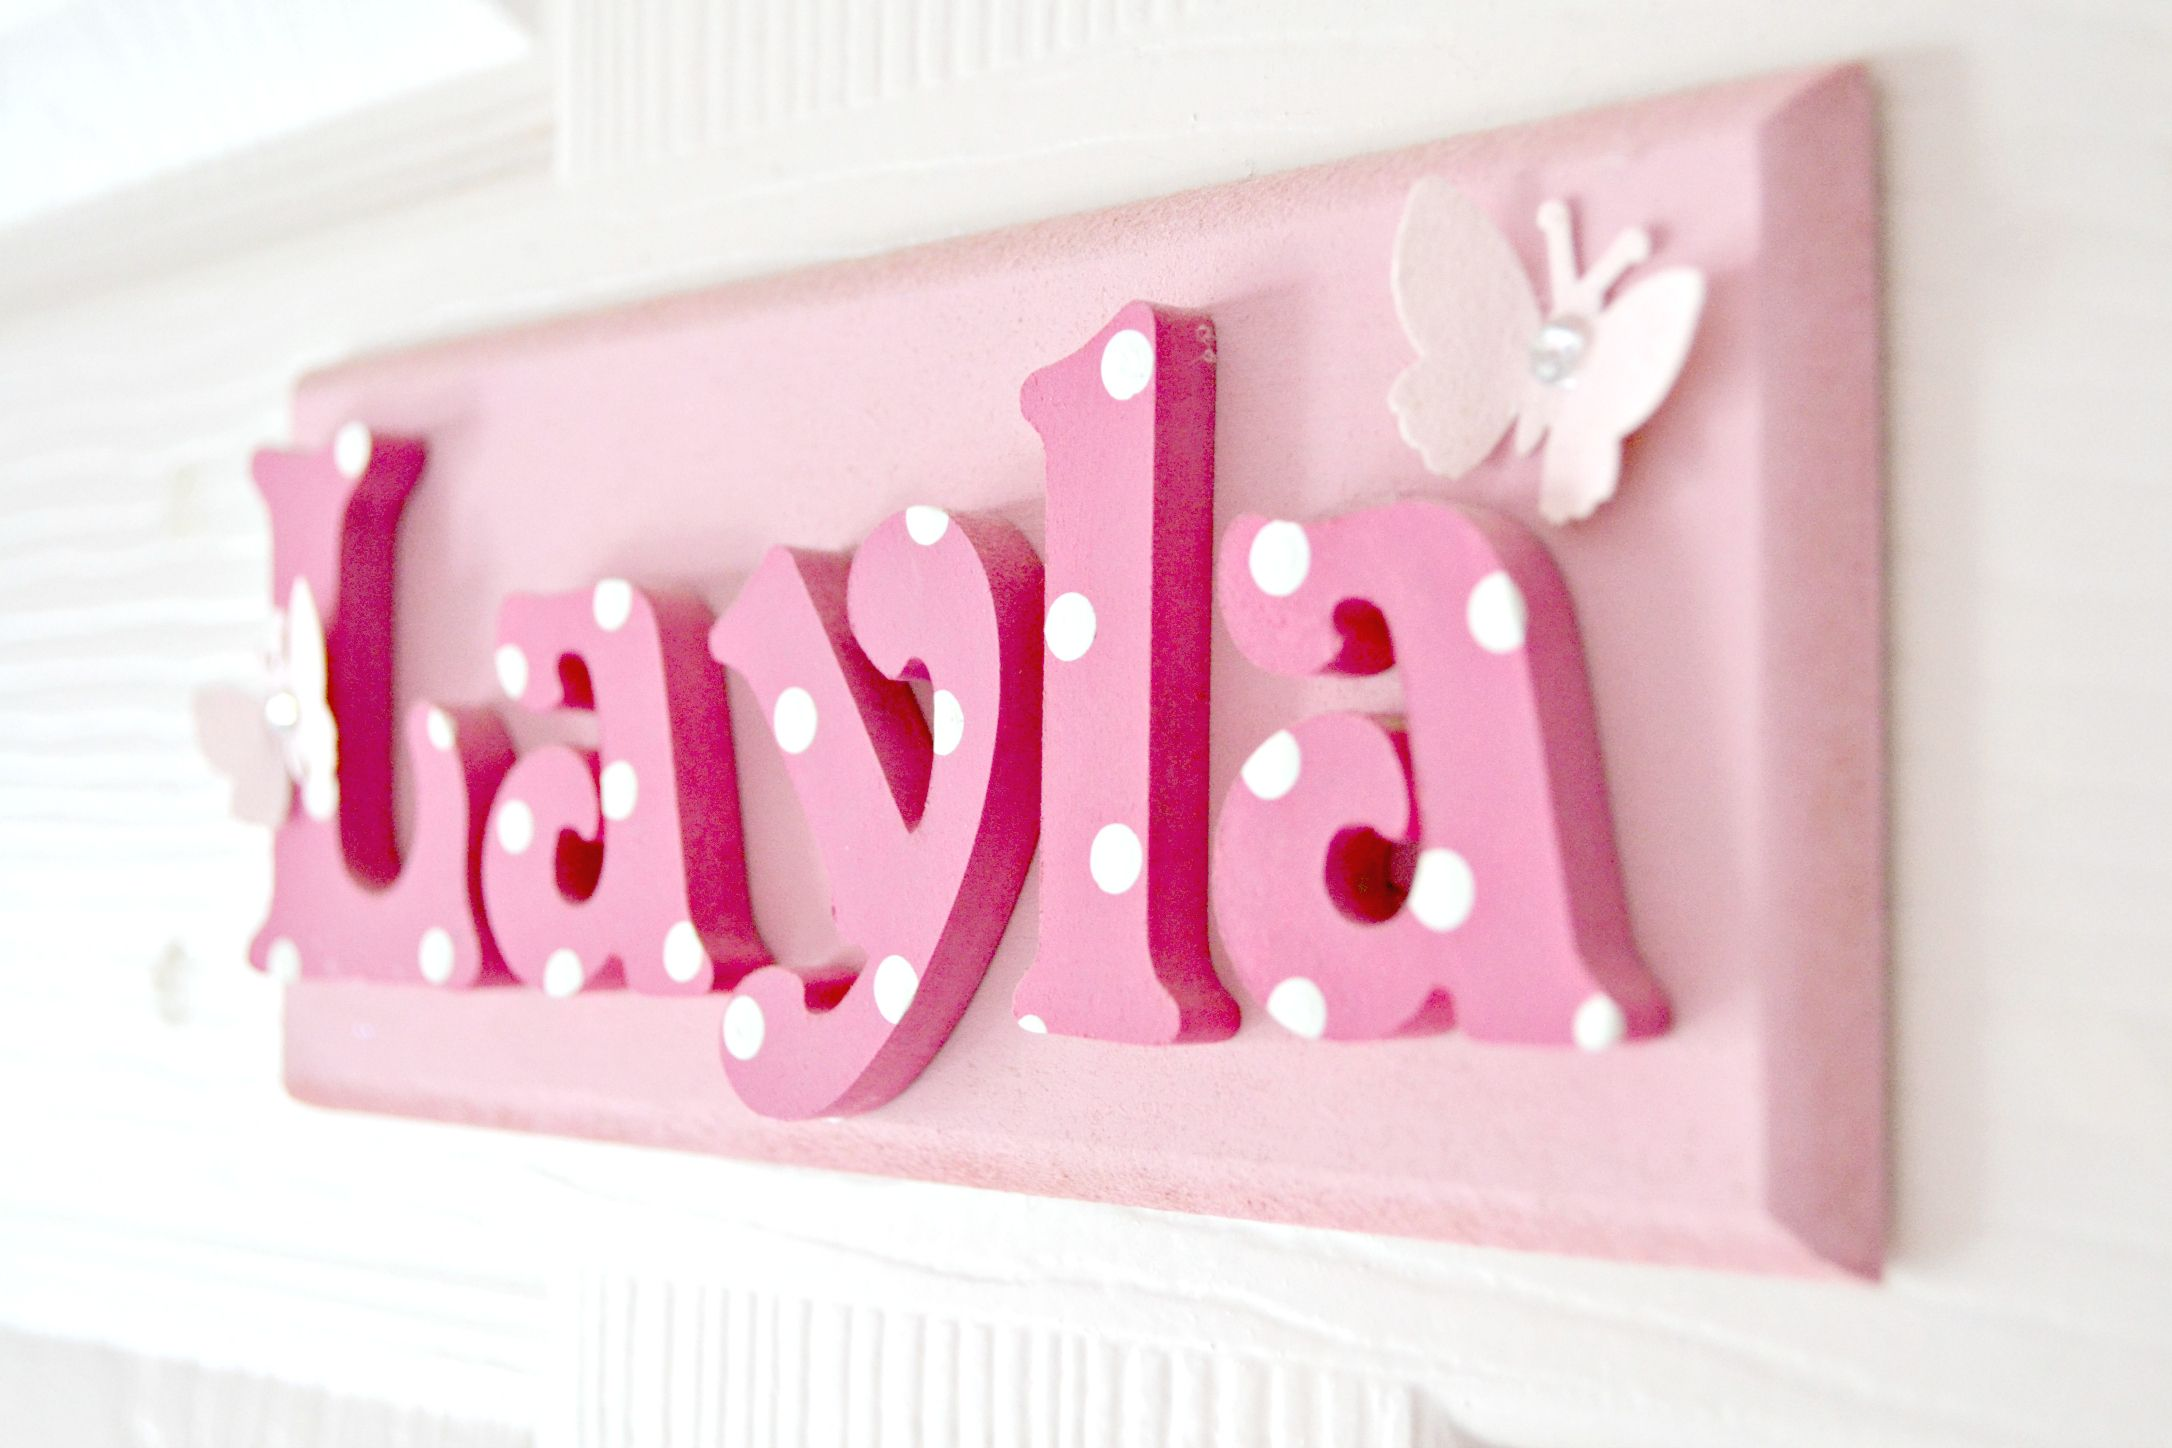 Baby Namen Rosa Layla S Door Name Plaque Suggys Co Uk Leanne Name